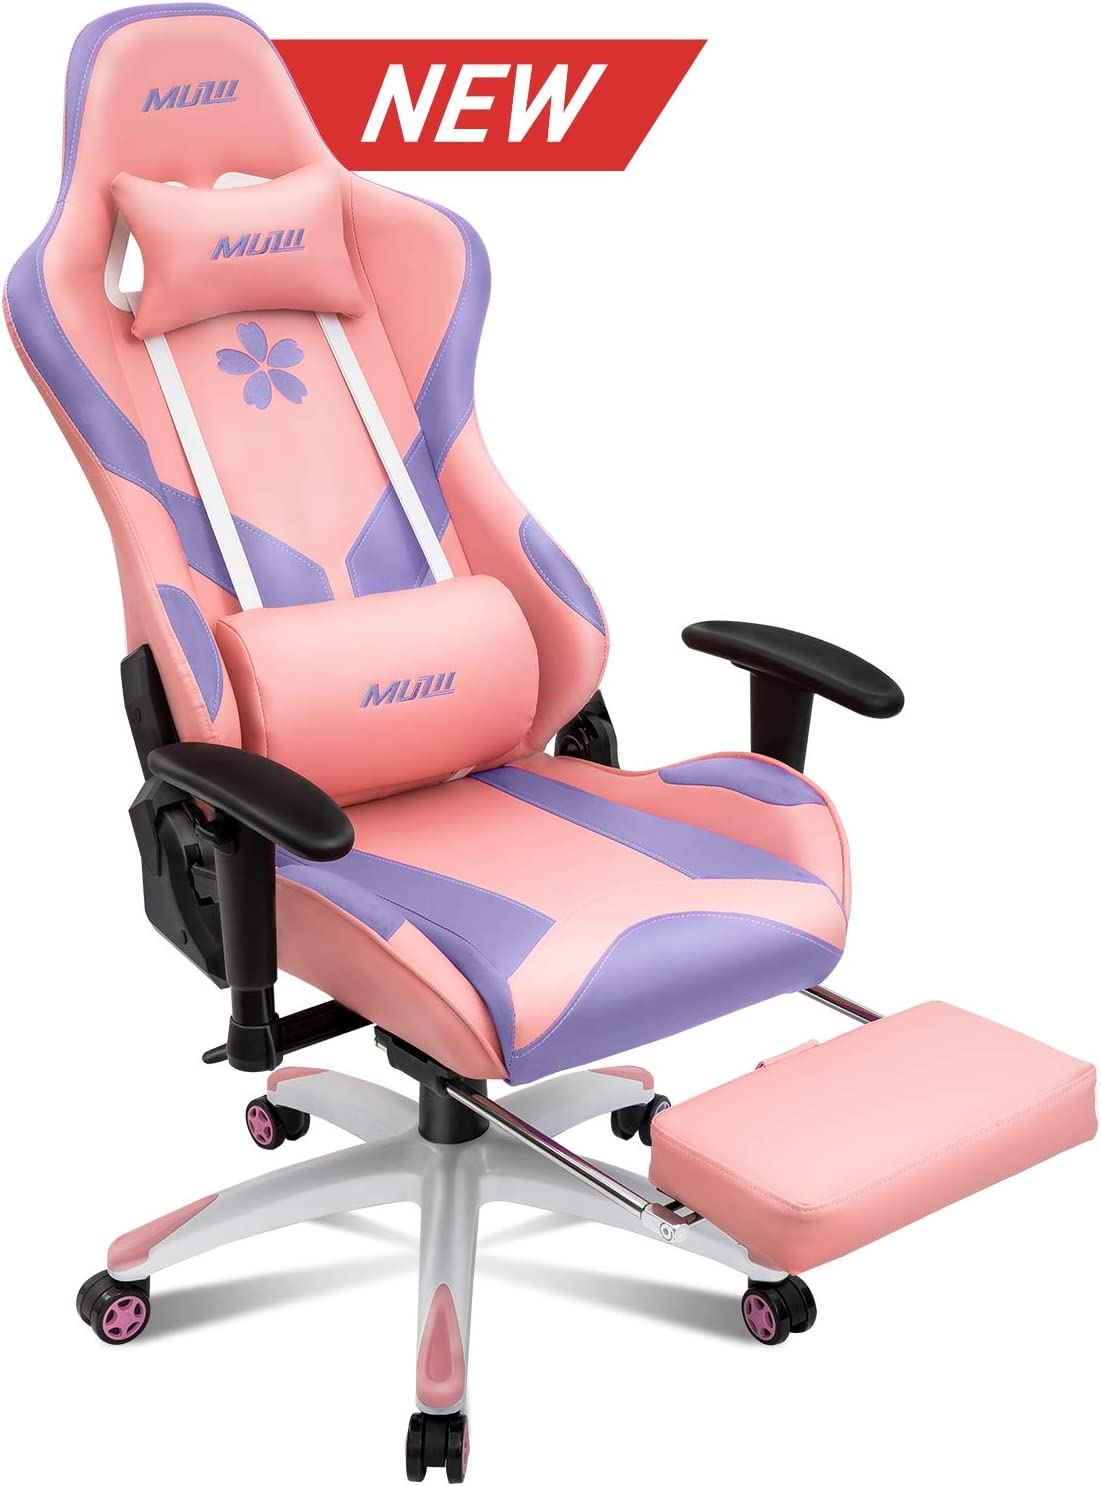 Muzii Pink and Purple Gaming Chair with Footrest, High-Back PU Leather Office Chair with Headrest and Adjustable Lumbar Support,Ergonomic Computer Swivel Chair for Teens and Adults